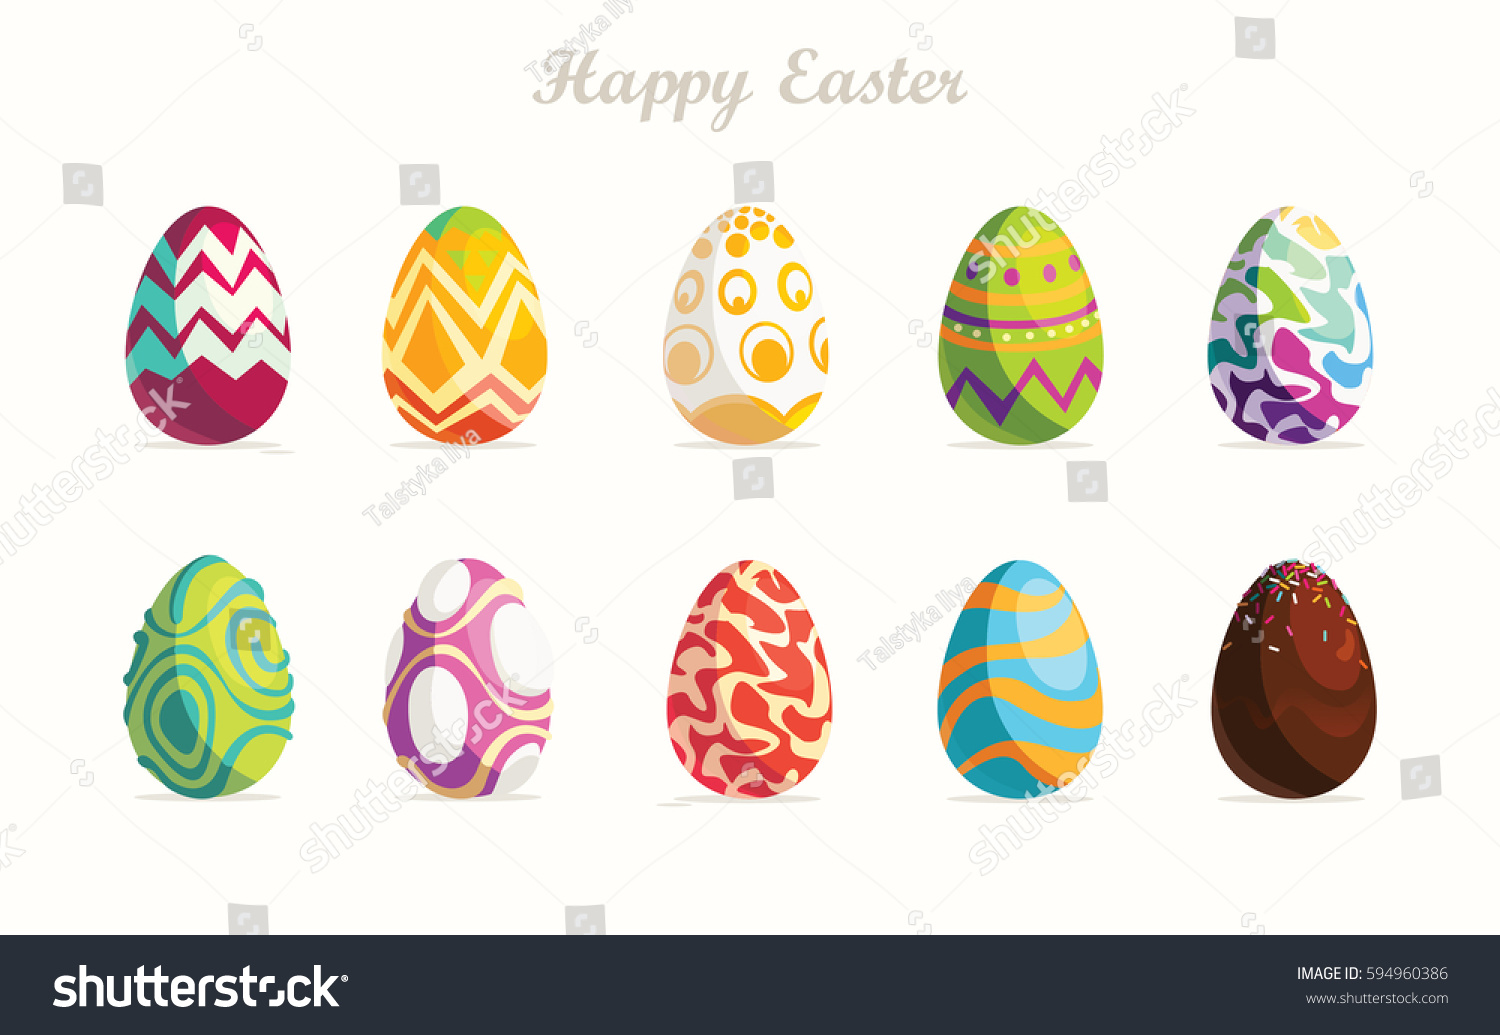 Happy Easter.Set of Easter eggs with different texture on a white background.Spring holiday. Vector Illustration.Happy easter eggs #594960386